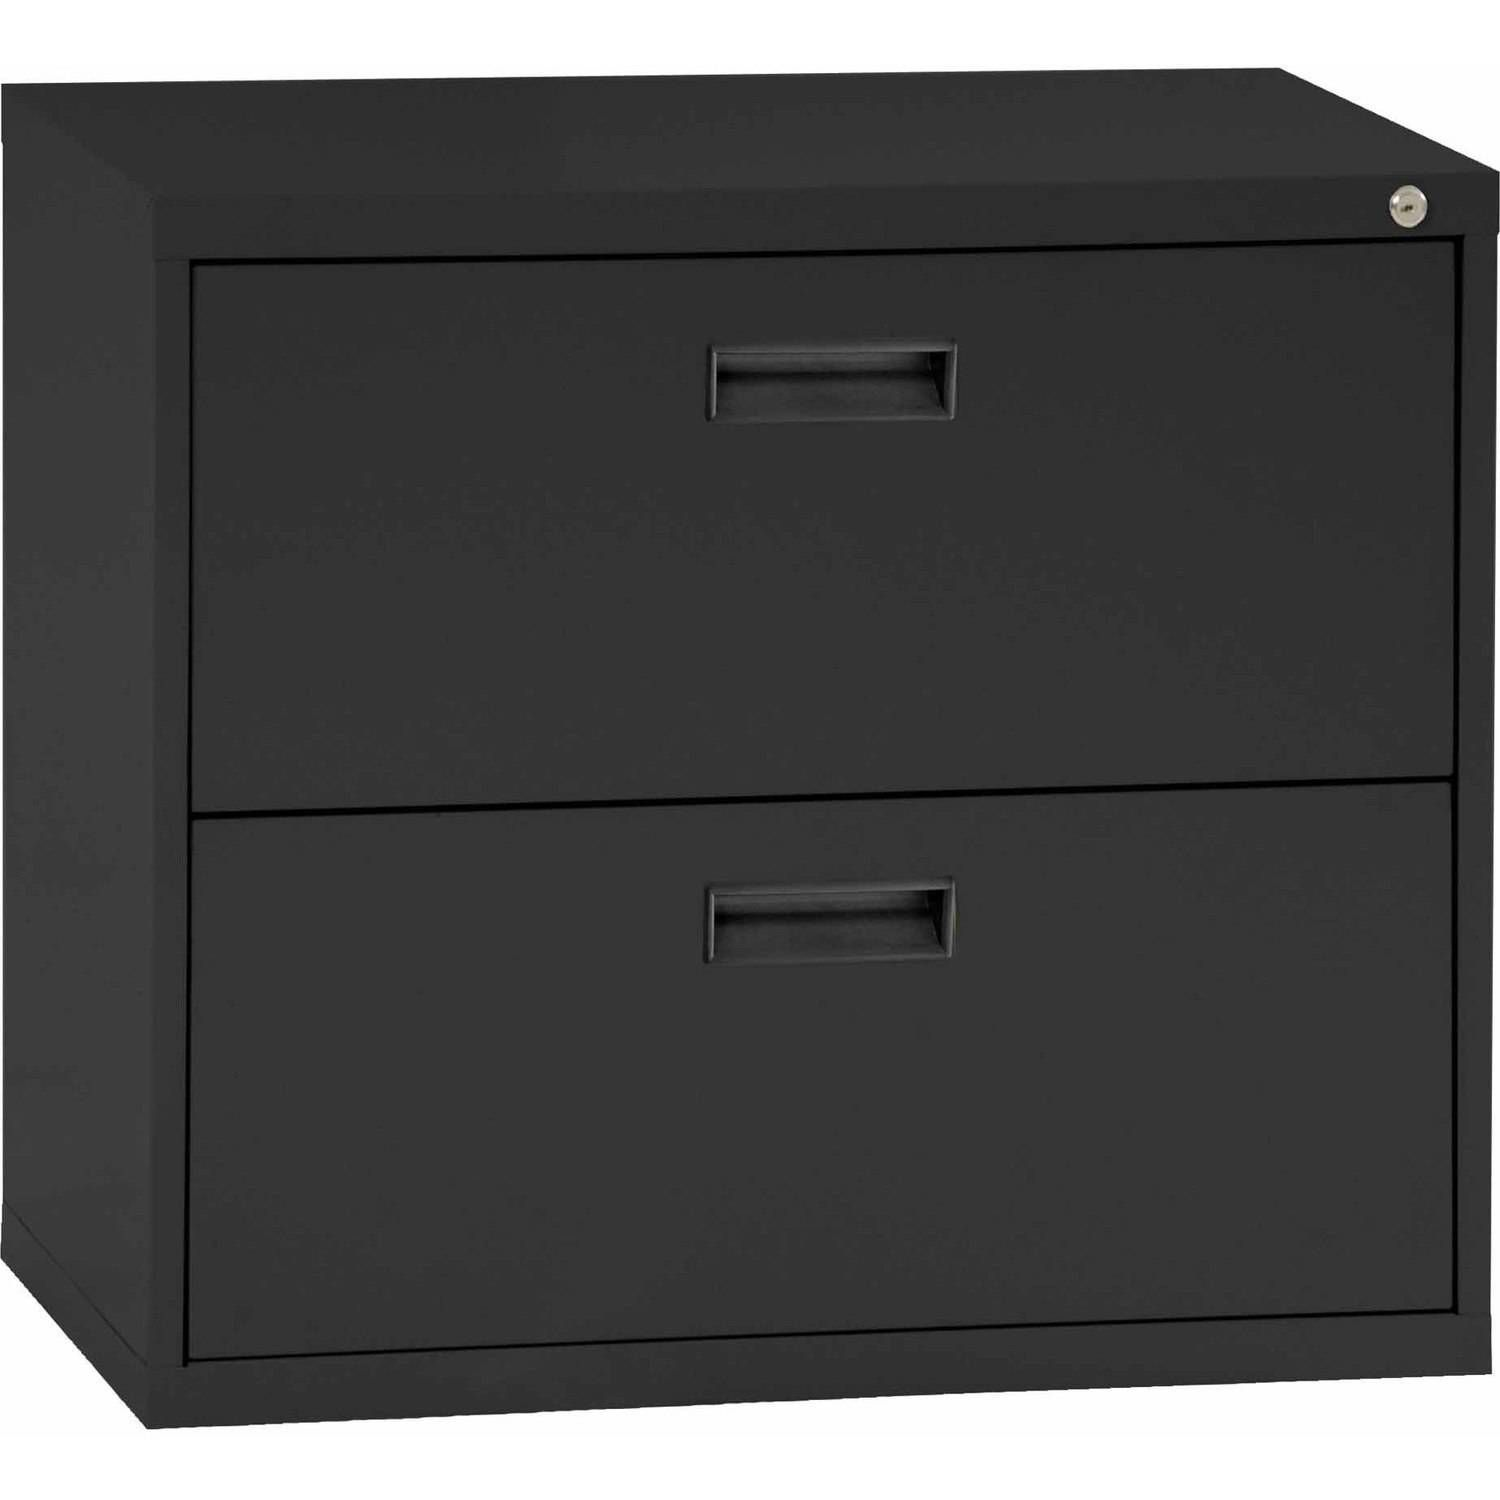 sandusky steel lateral file cabinet with plastic handle, 2 drawers